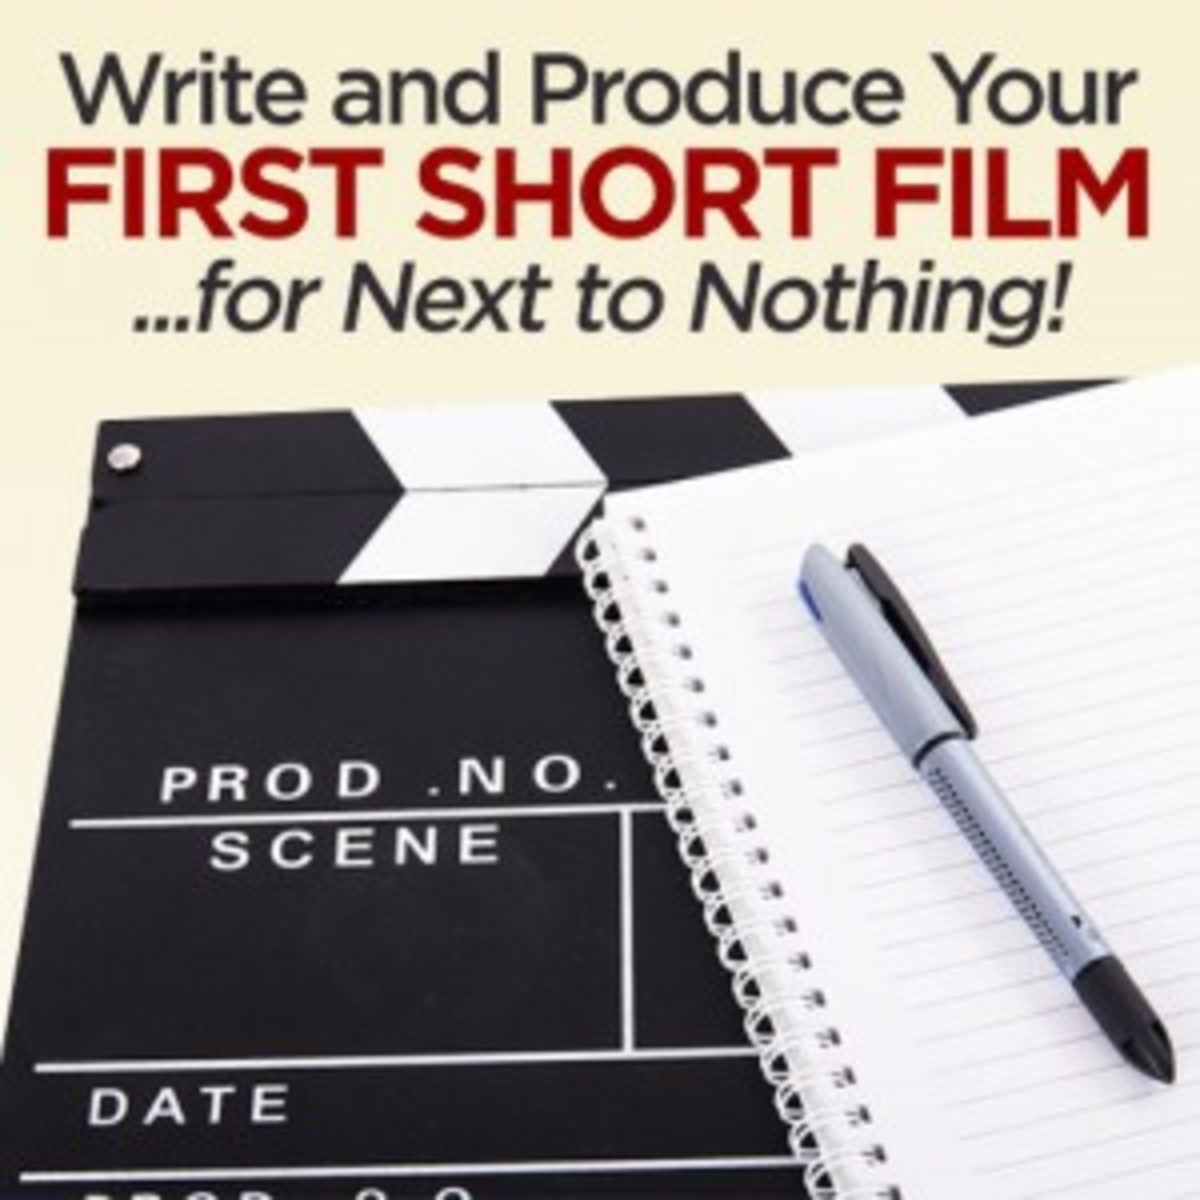 Write and Produce Your First Short Film...for Next to Nothing!